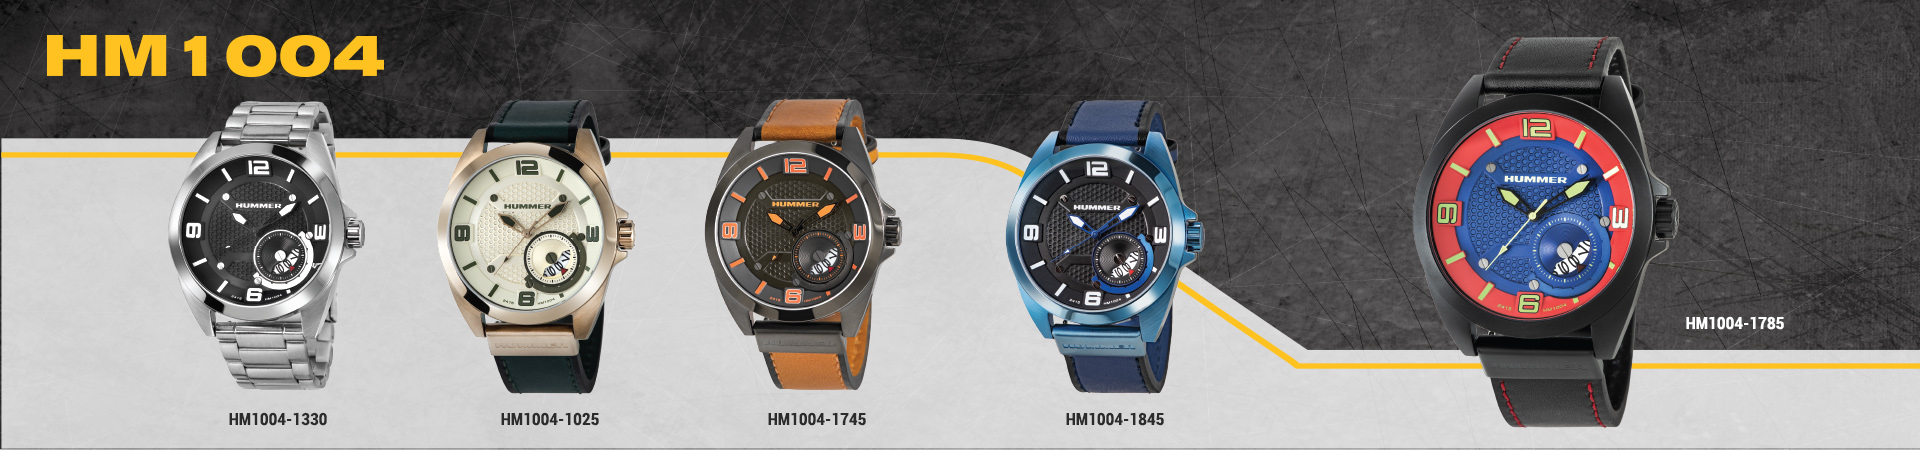 Hummer Watch Collection HM1004